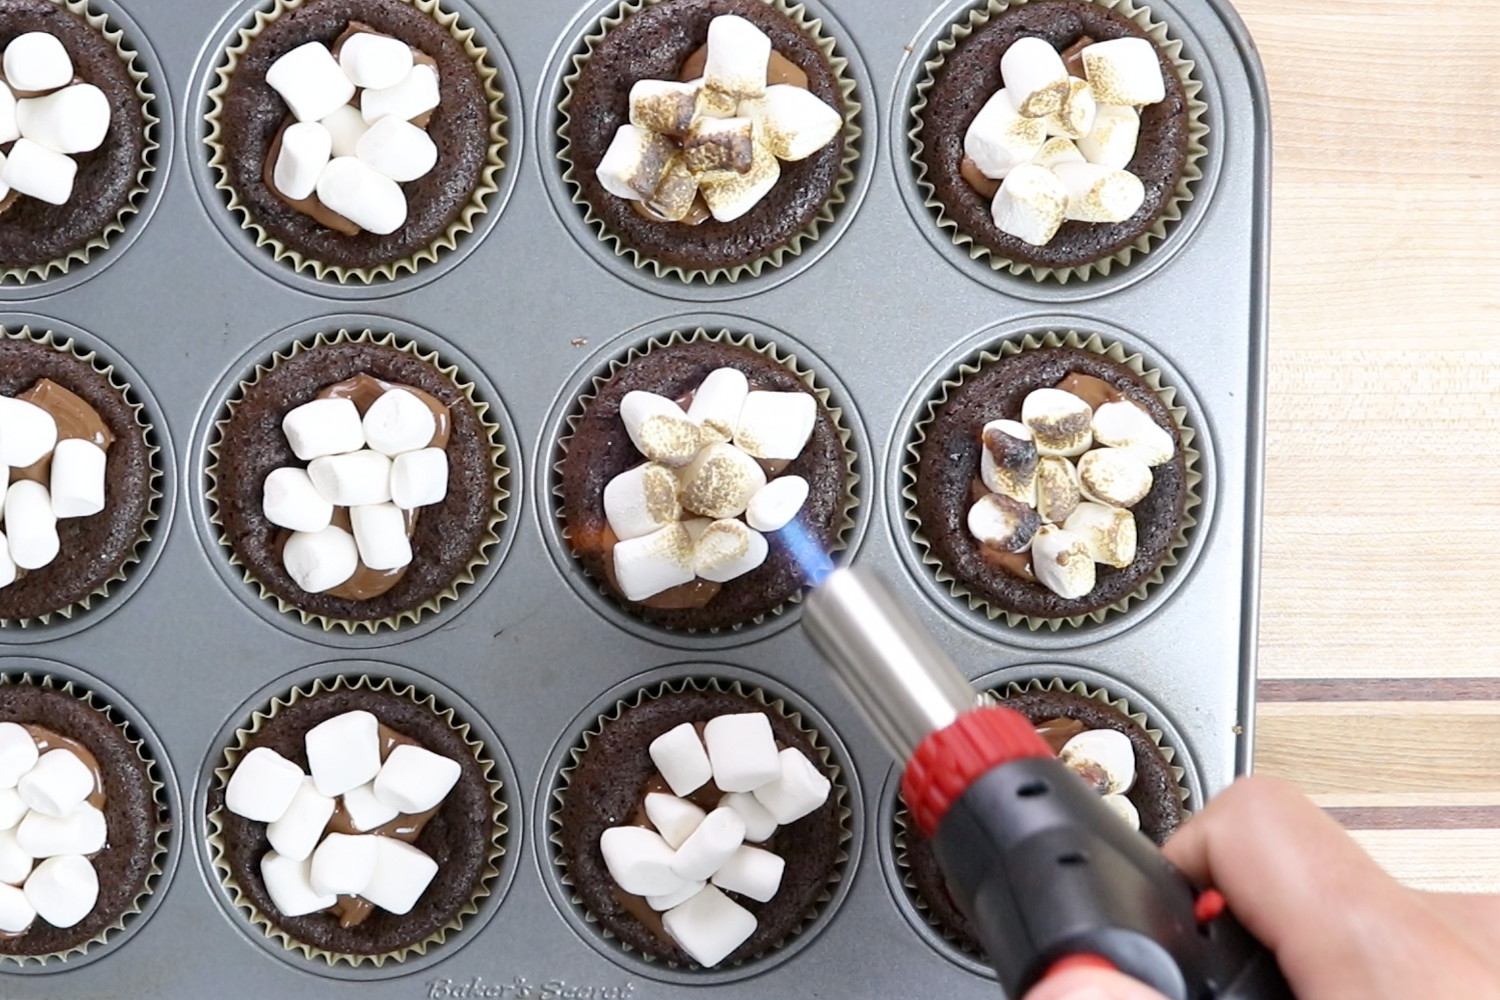 13. Use a kitchen blowtorch to roast the marshmallows until golden brown on top. -